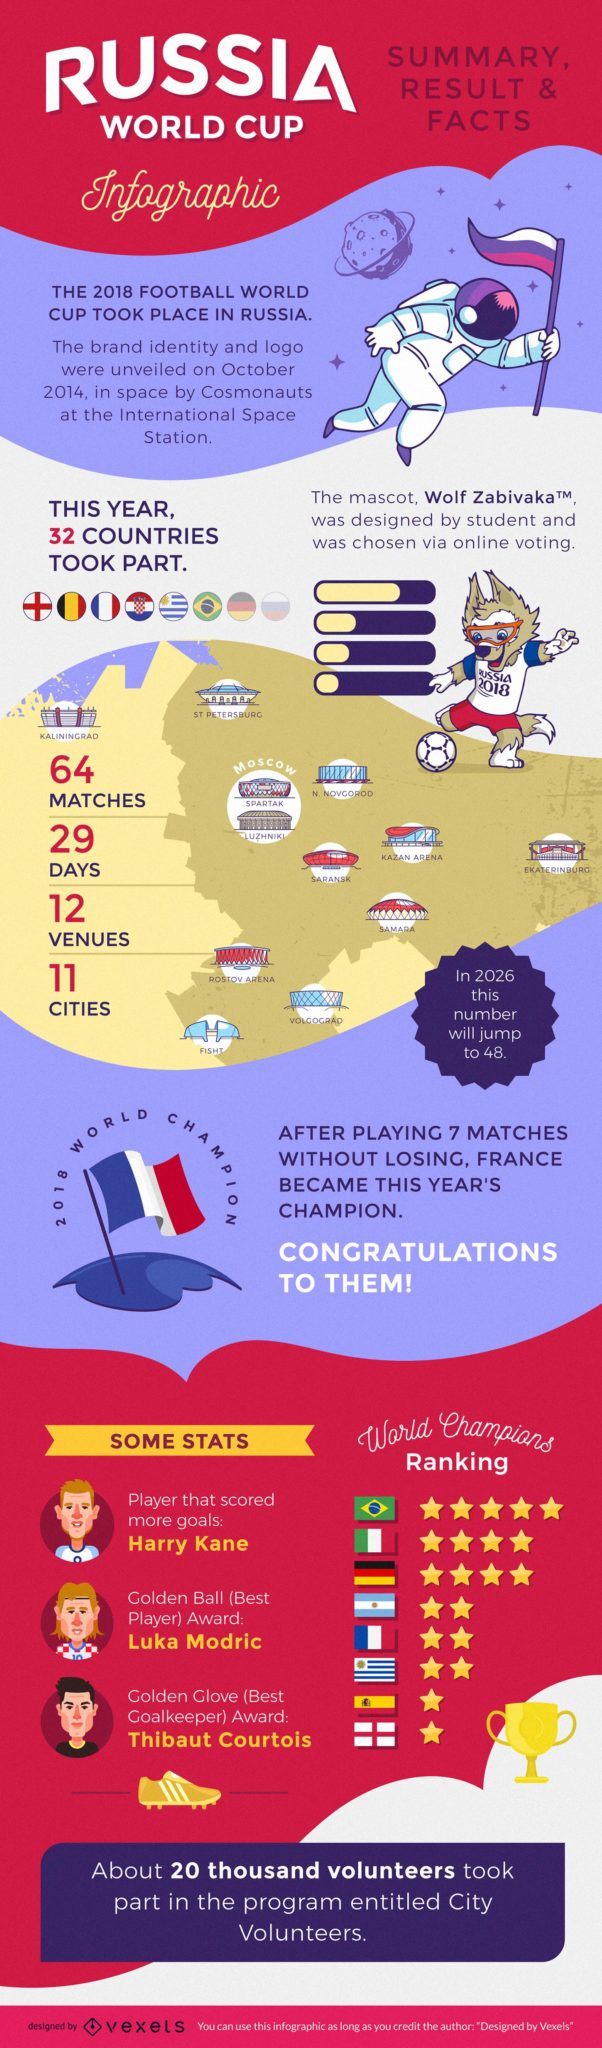 Russia 2018 World Cup infographic